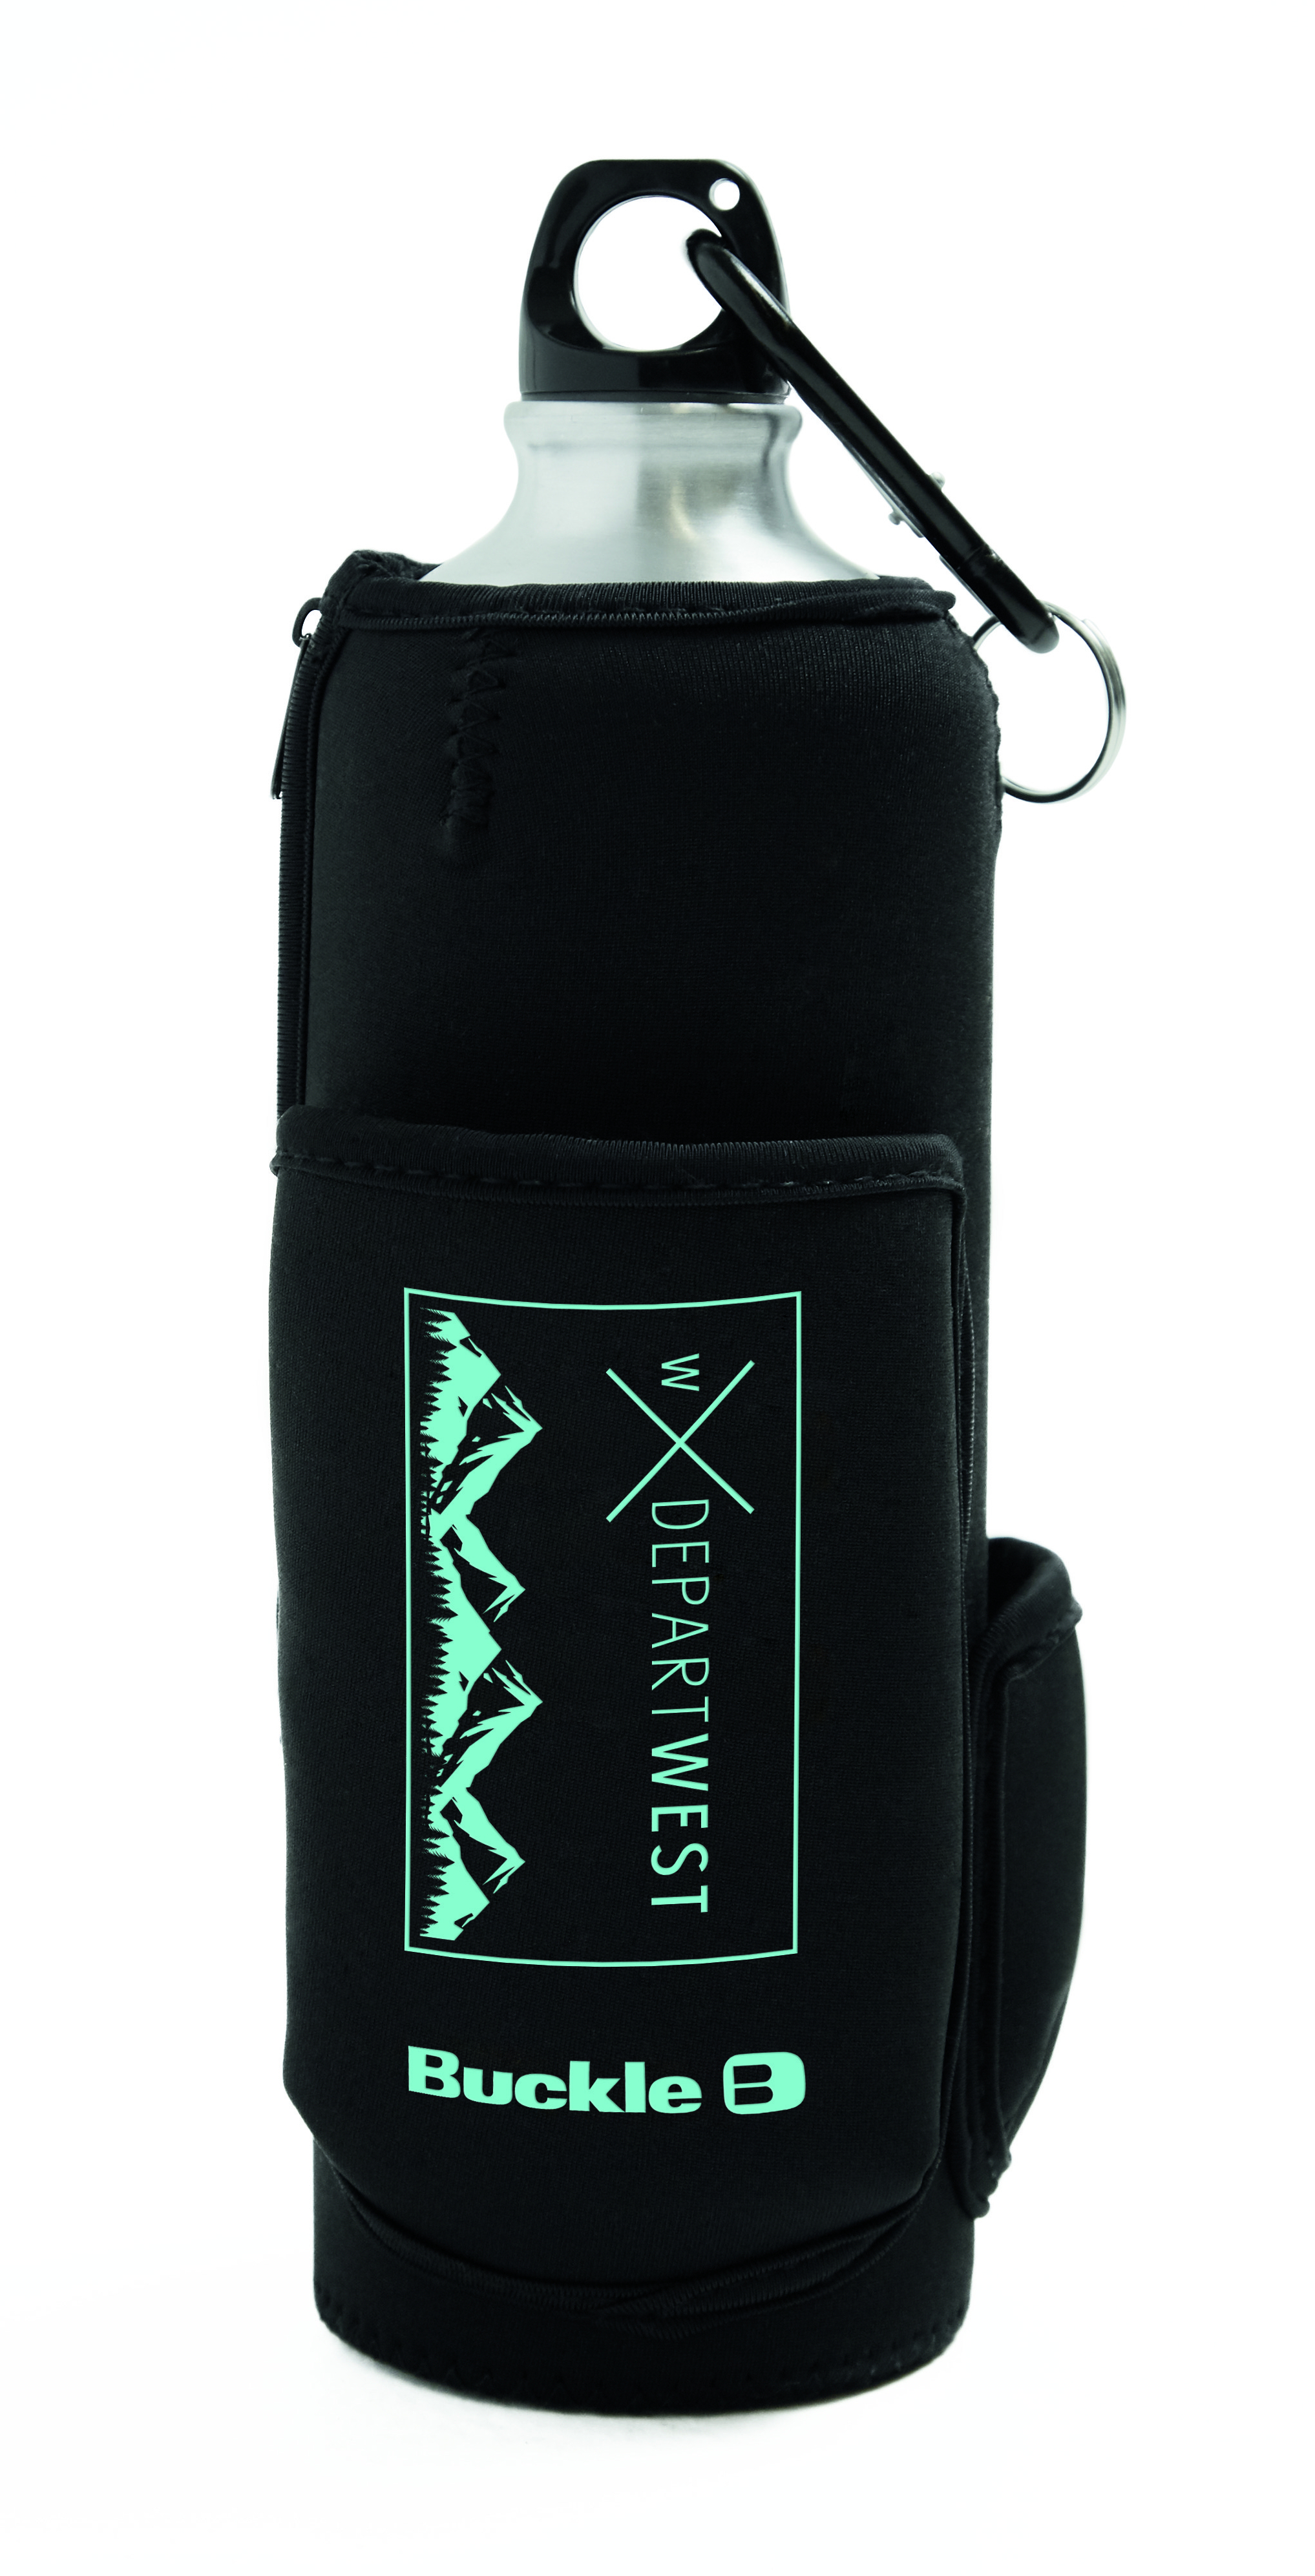 Buckle Brand Event - Departwest Water Bottle